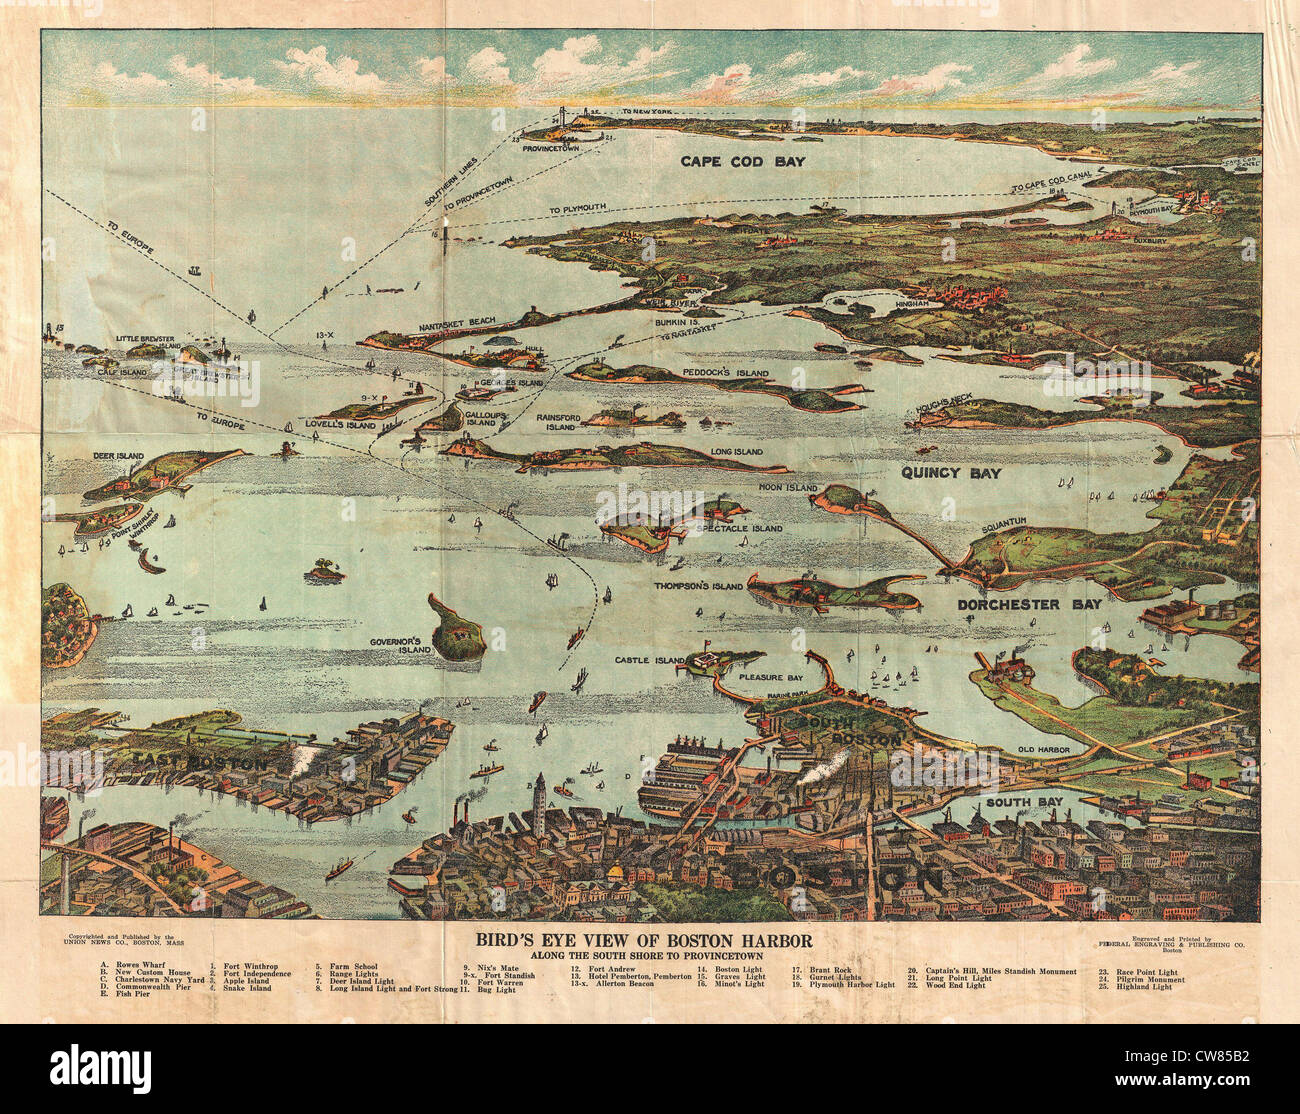 1899 View Map of Boston Harbor from Boston to Cape Cod and Provincetown - Stock Image